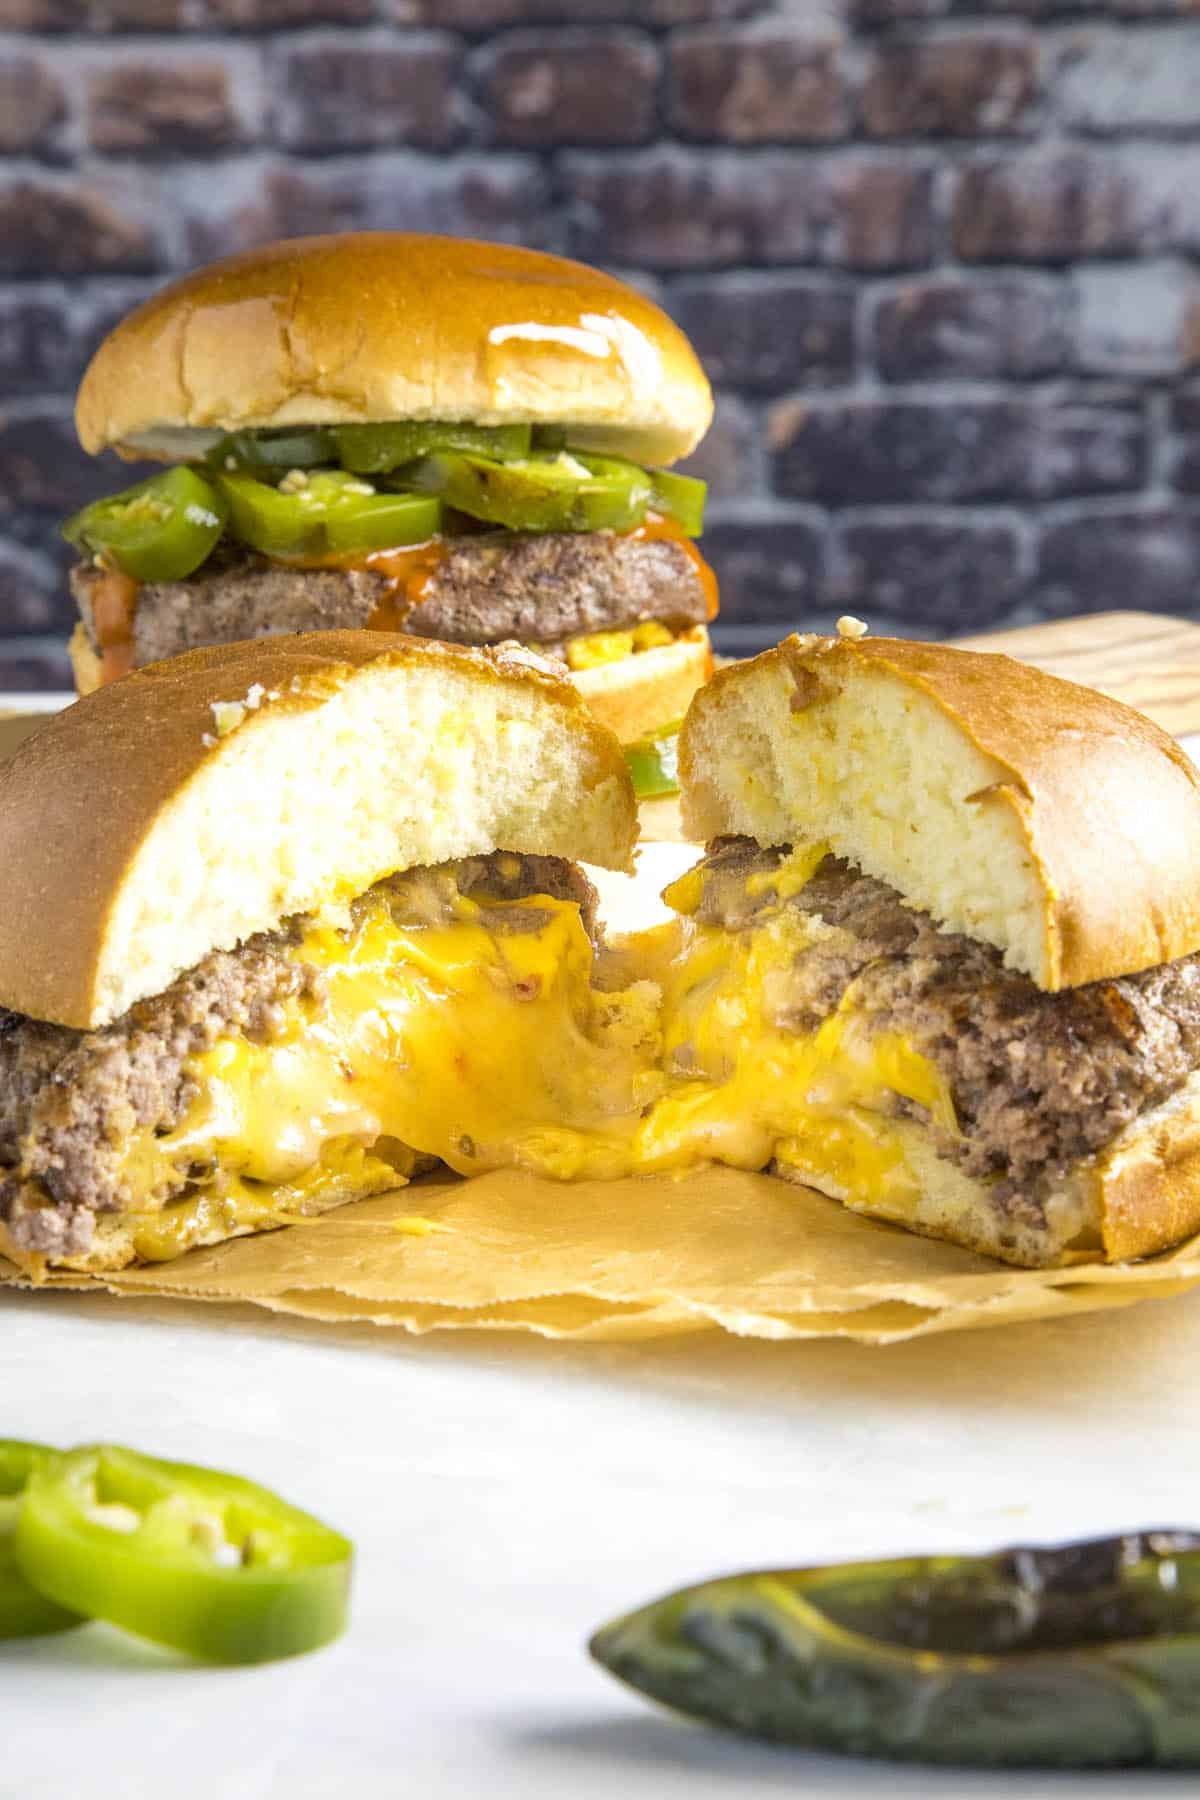 Juicy Lucy Burgers oozing melty cheese